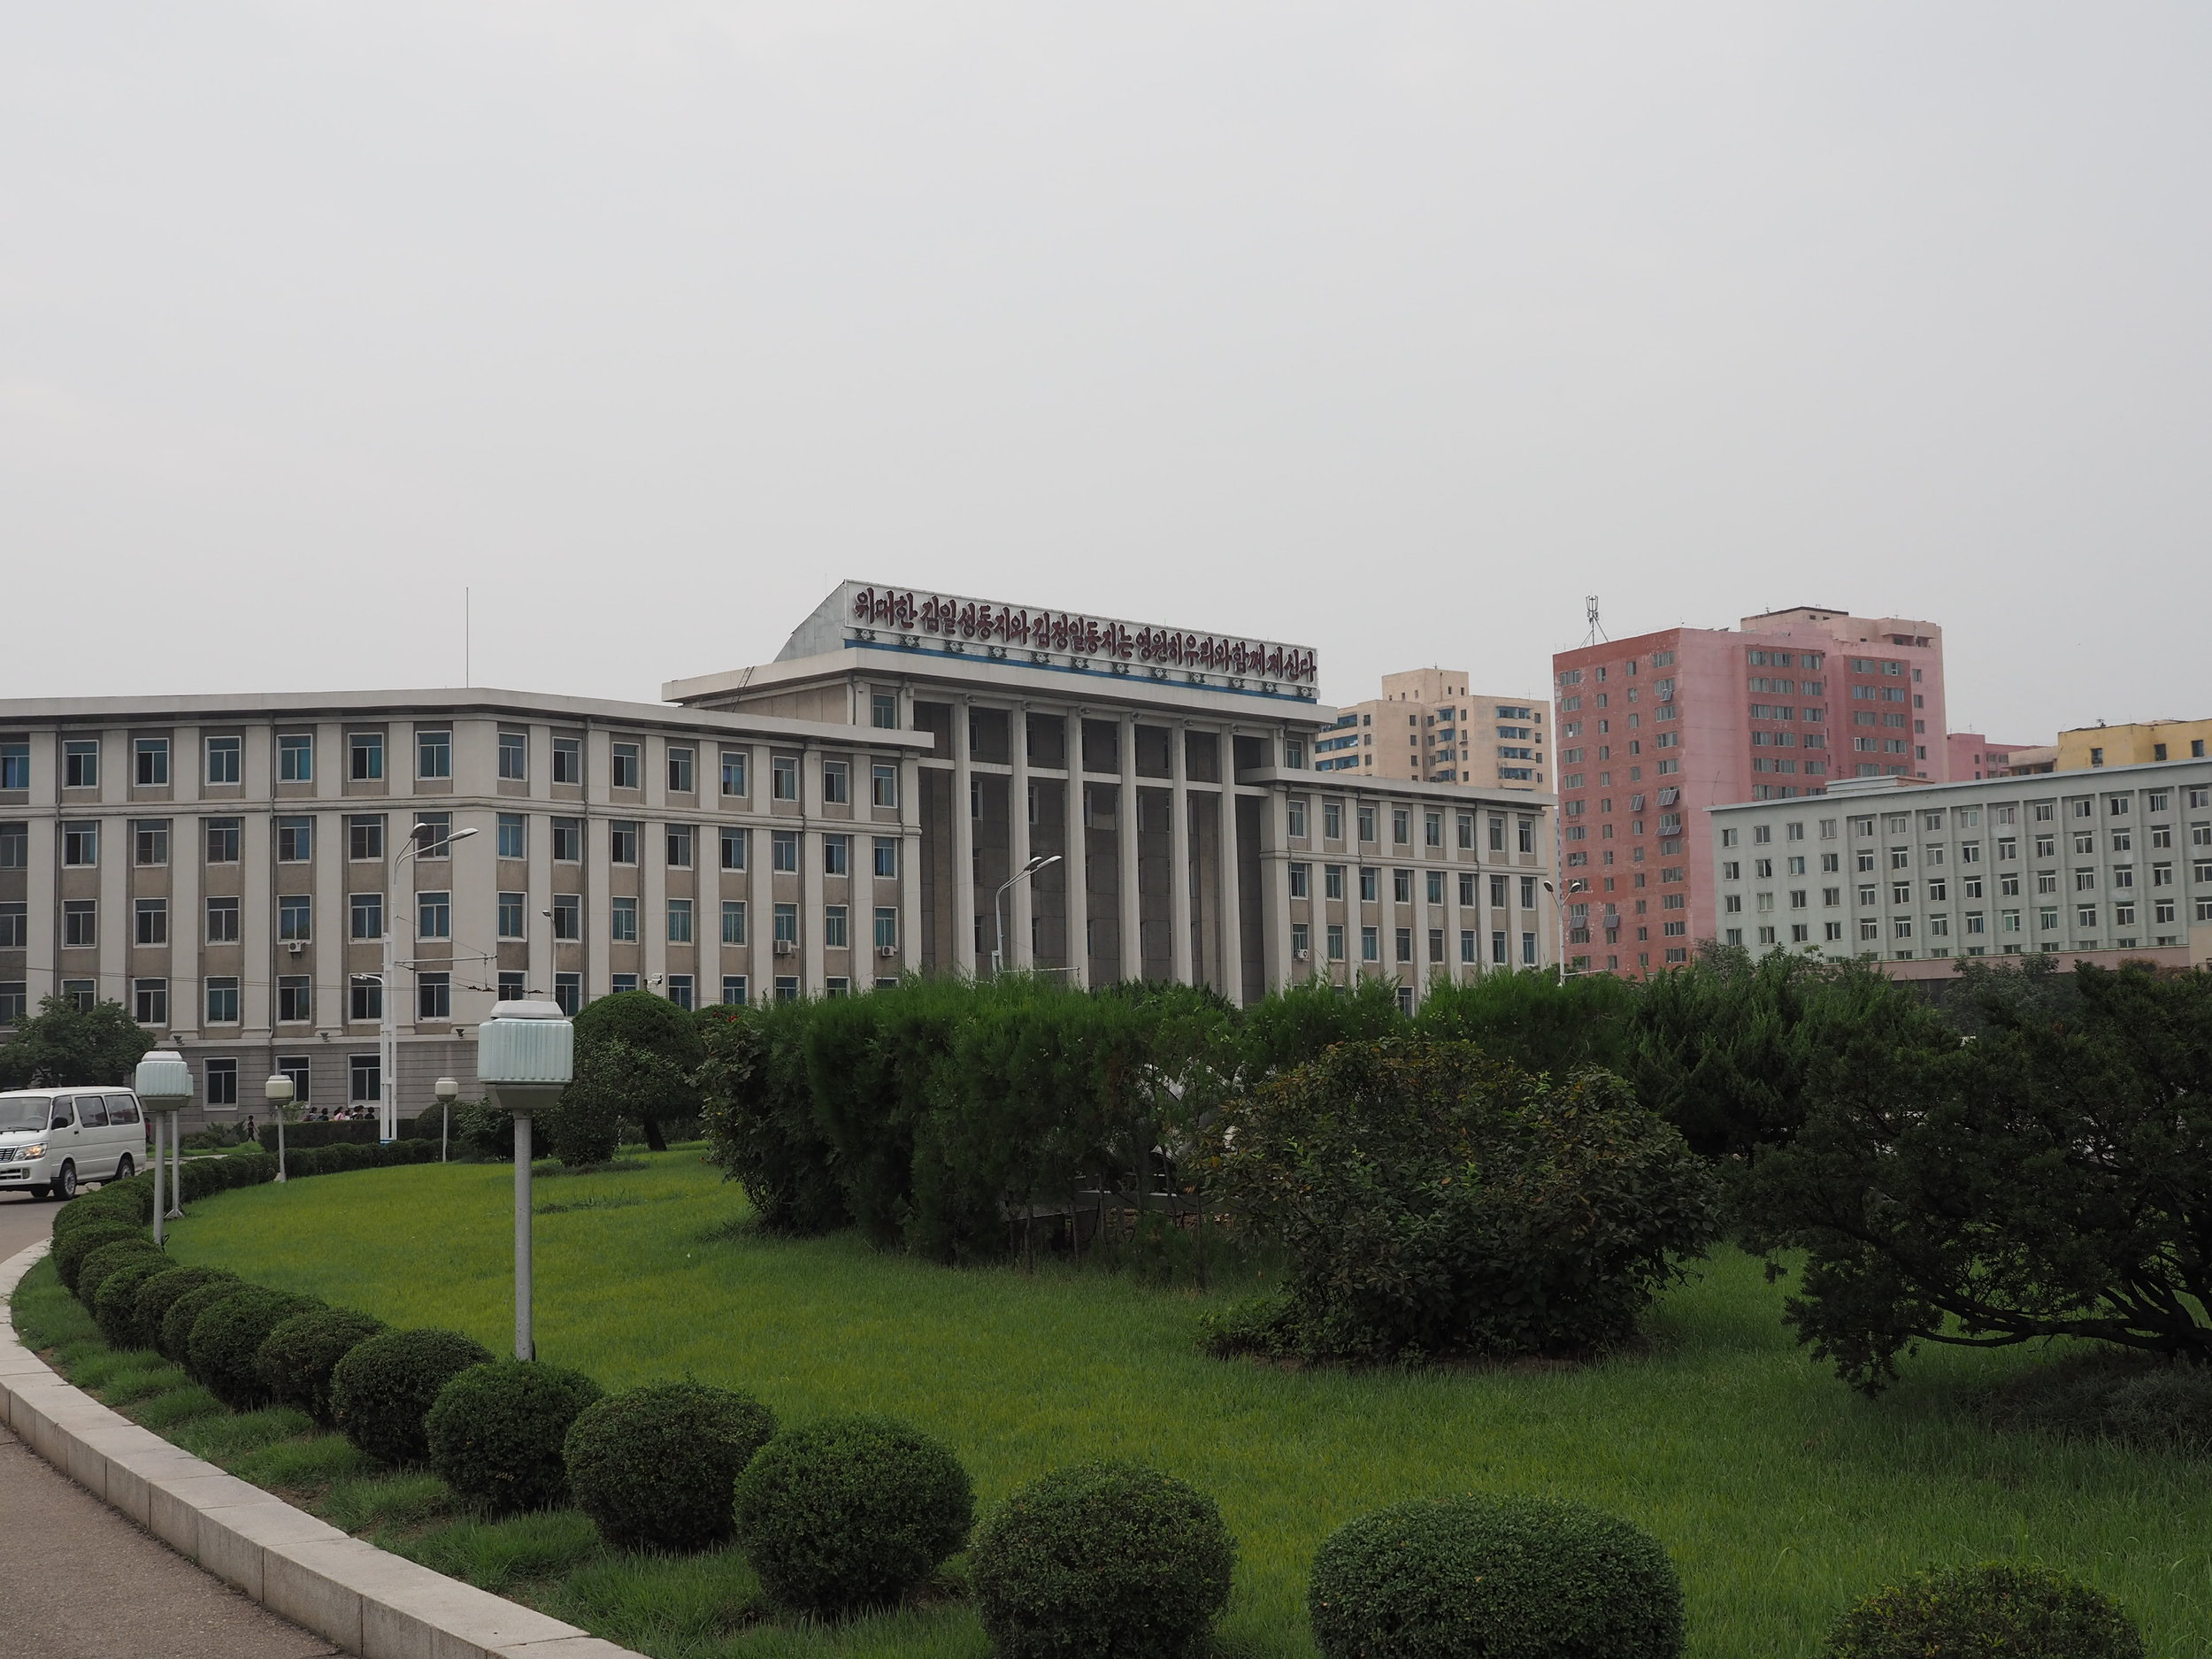 State Planning Commission building